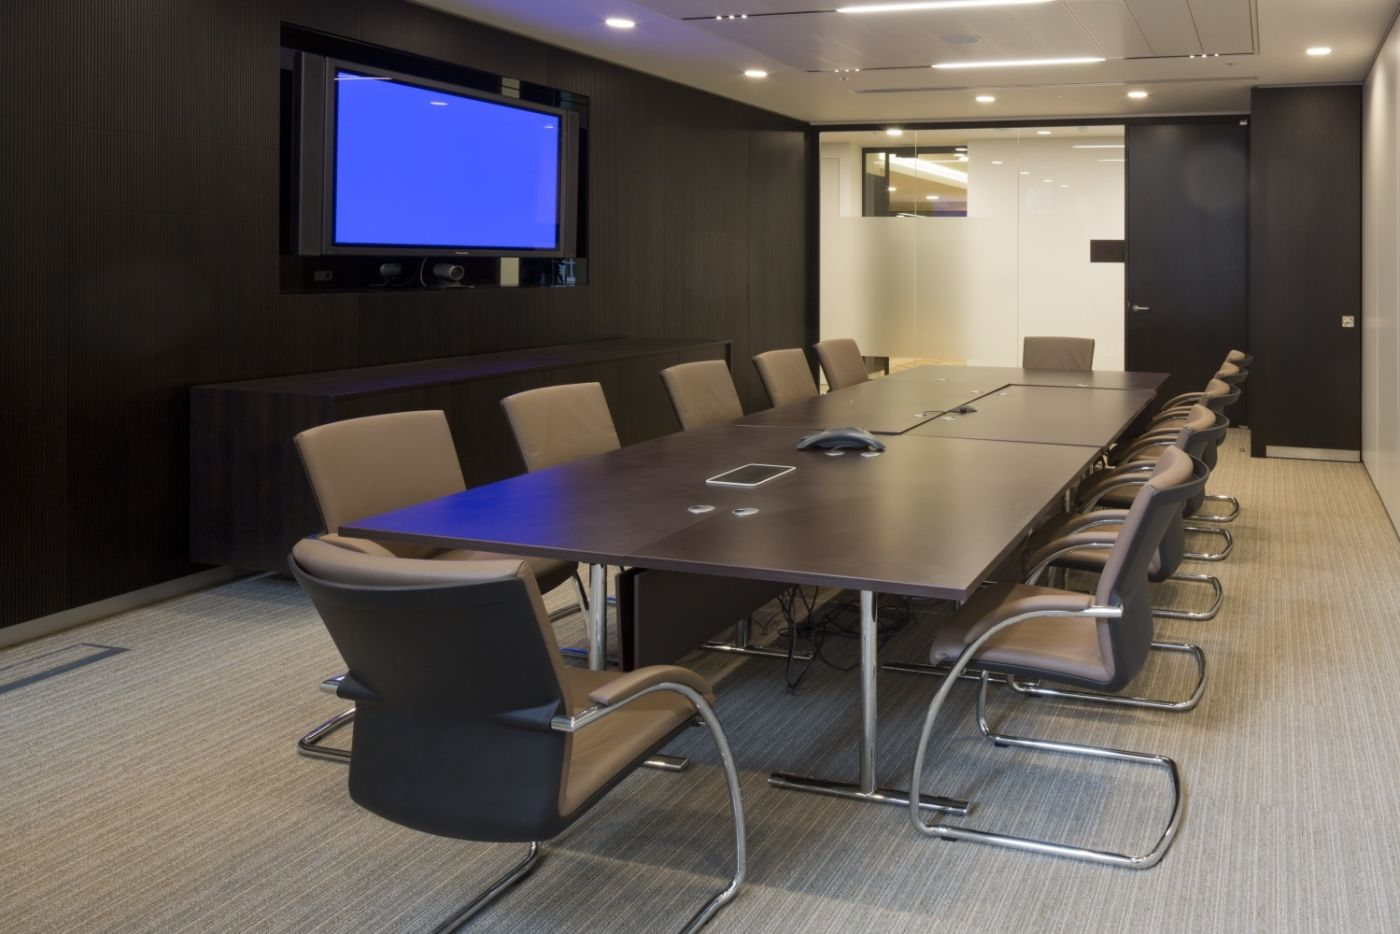 Television in smart meeting room